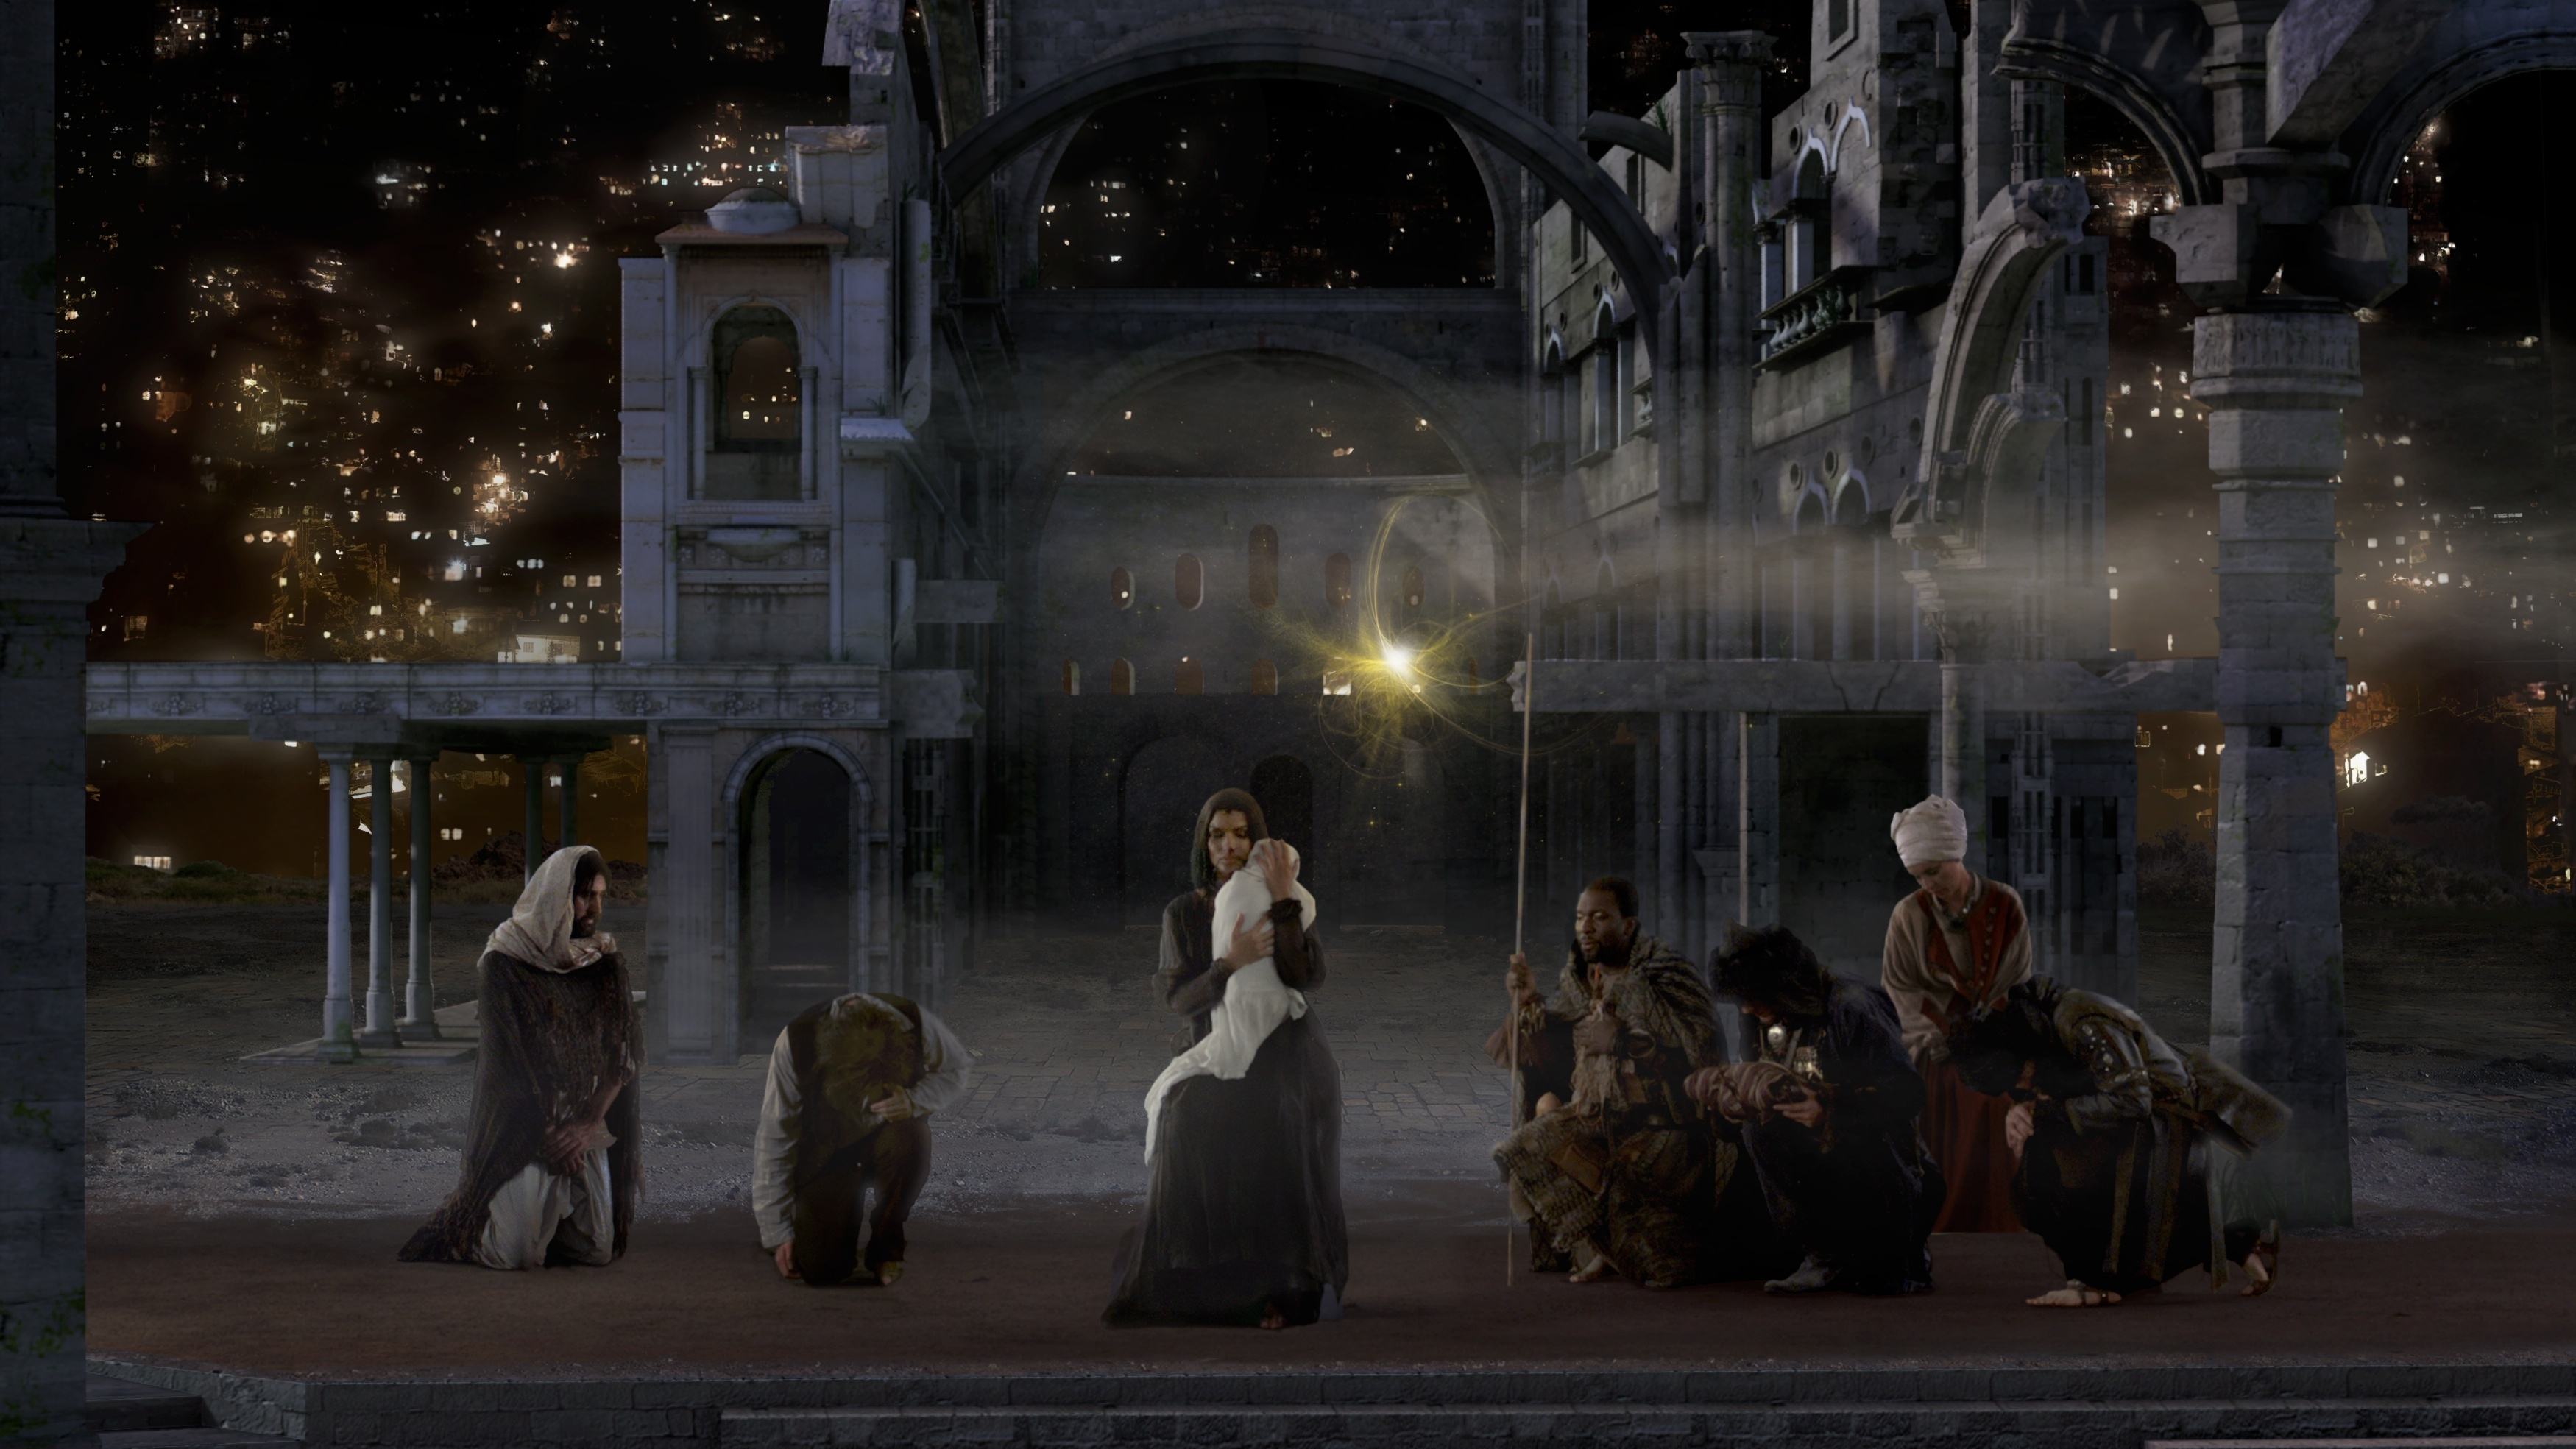 Experience The Nativity Scene As A Generative, Ever-Changing Digital ...